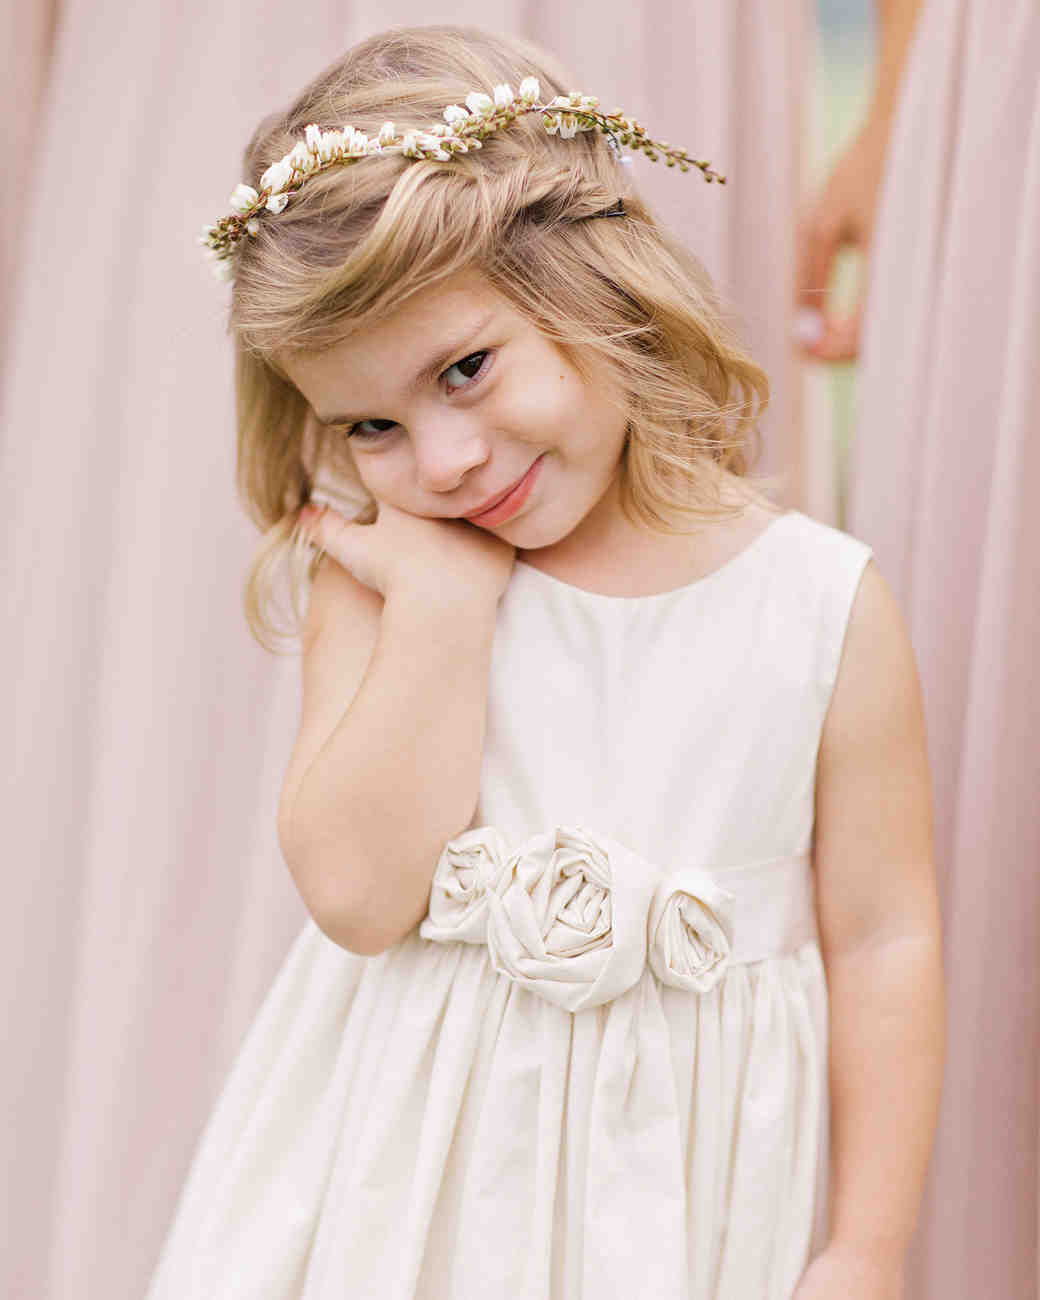 Flower Girl Hairstyles For Wedding: Adorable Hairstyle Ideas For Your Flower Girls